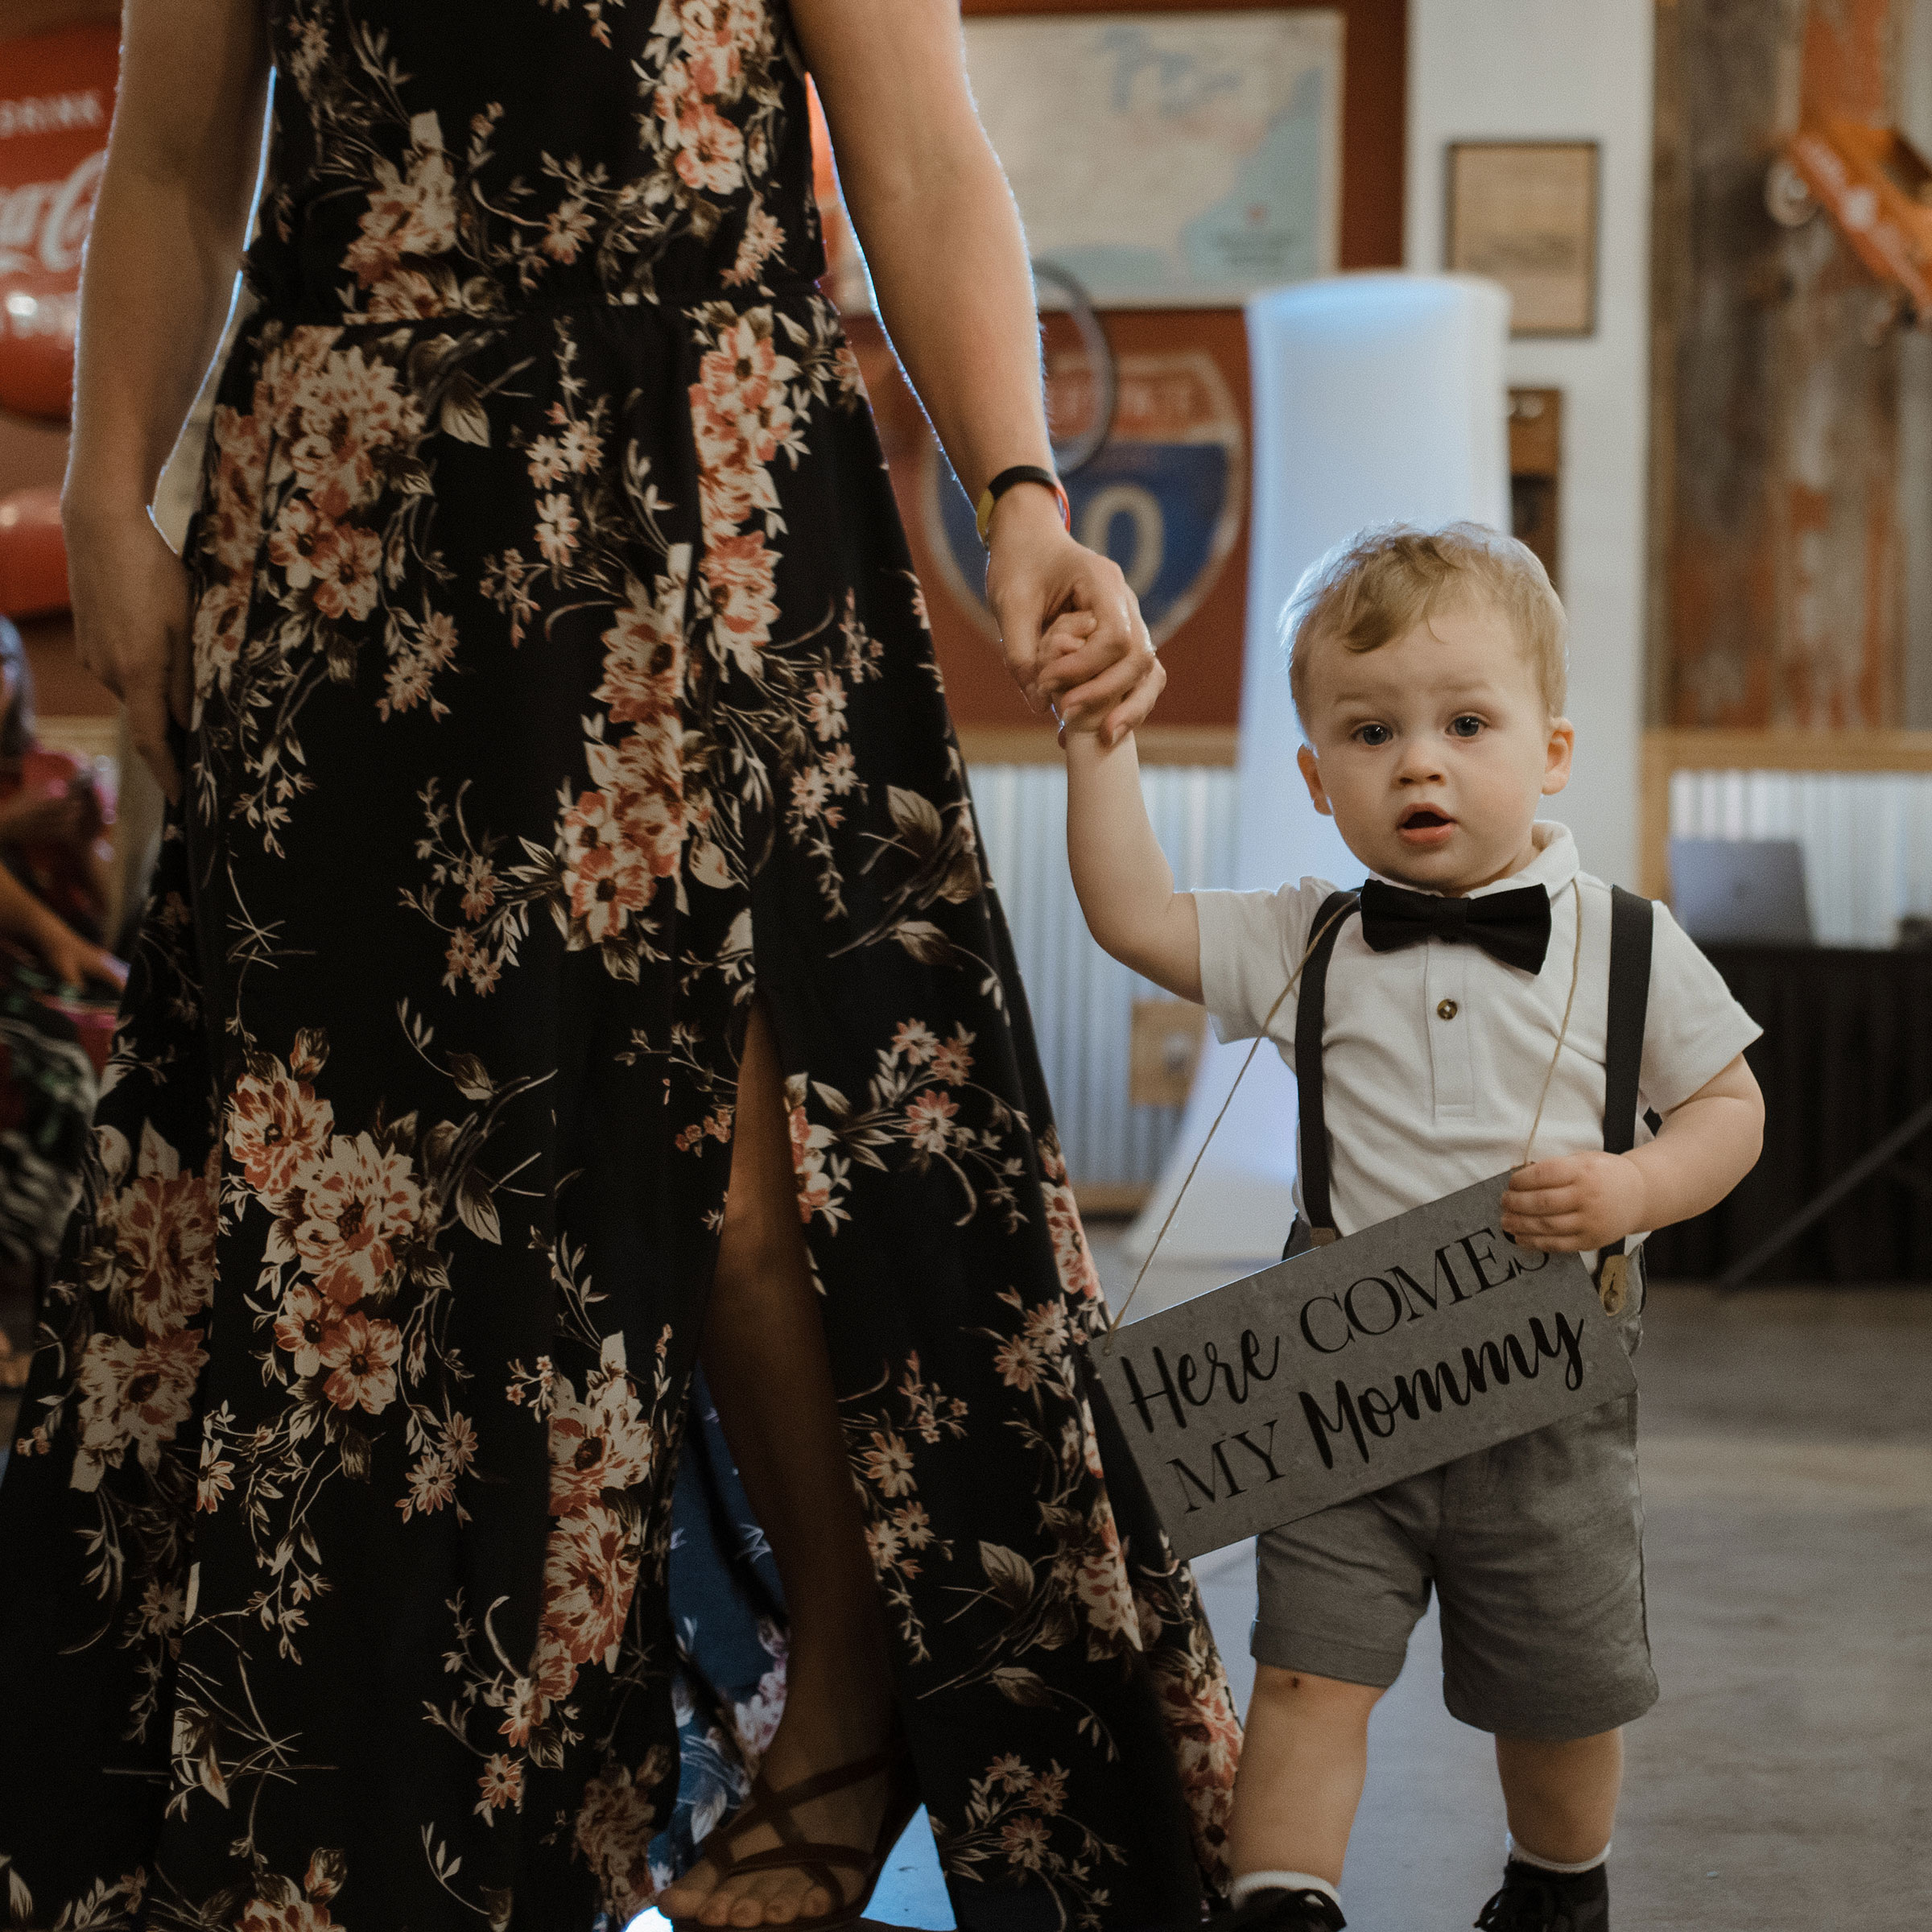 little-boy-walking-down-aisle-with-sign-decades-event-center-building-desmoines-iowa-raelyn-ramey-photography.jpg